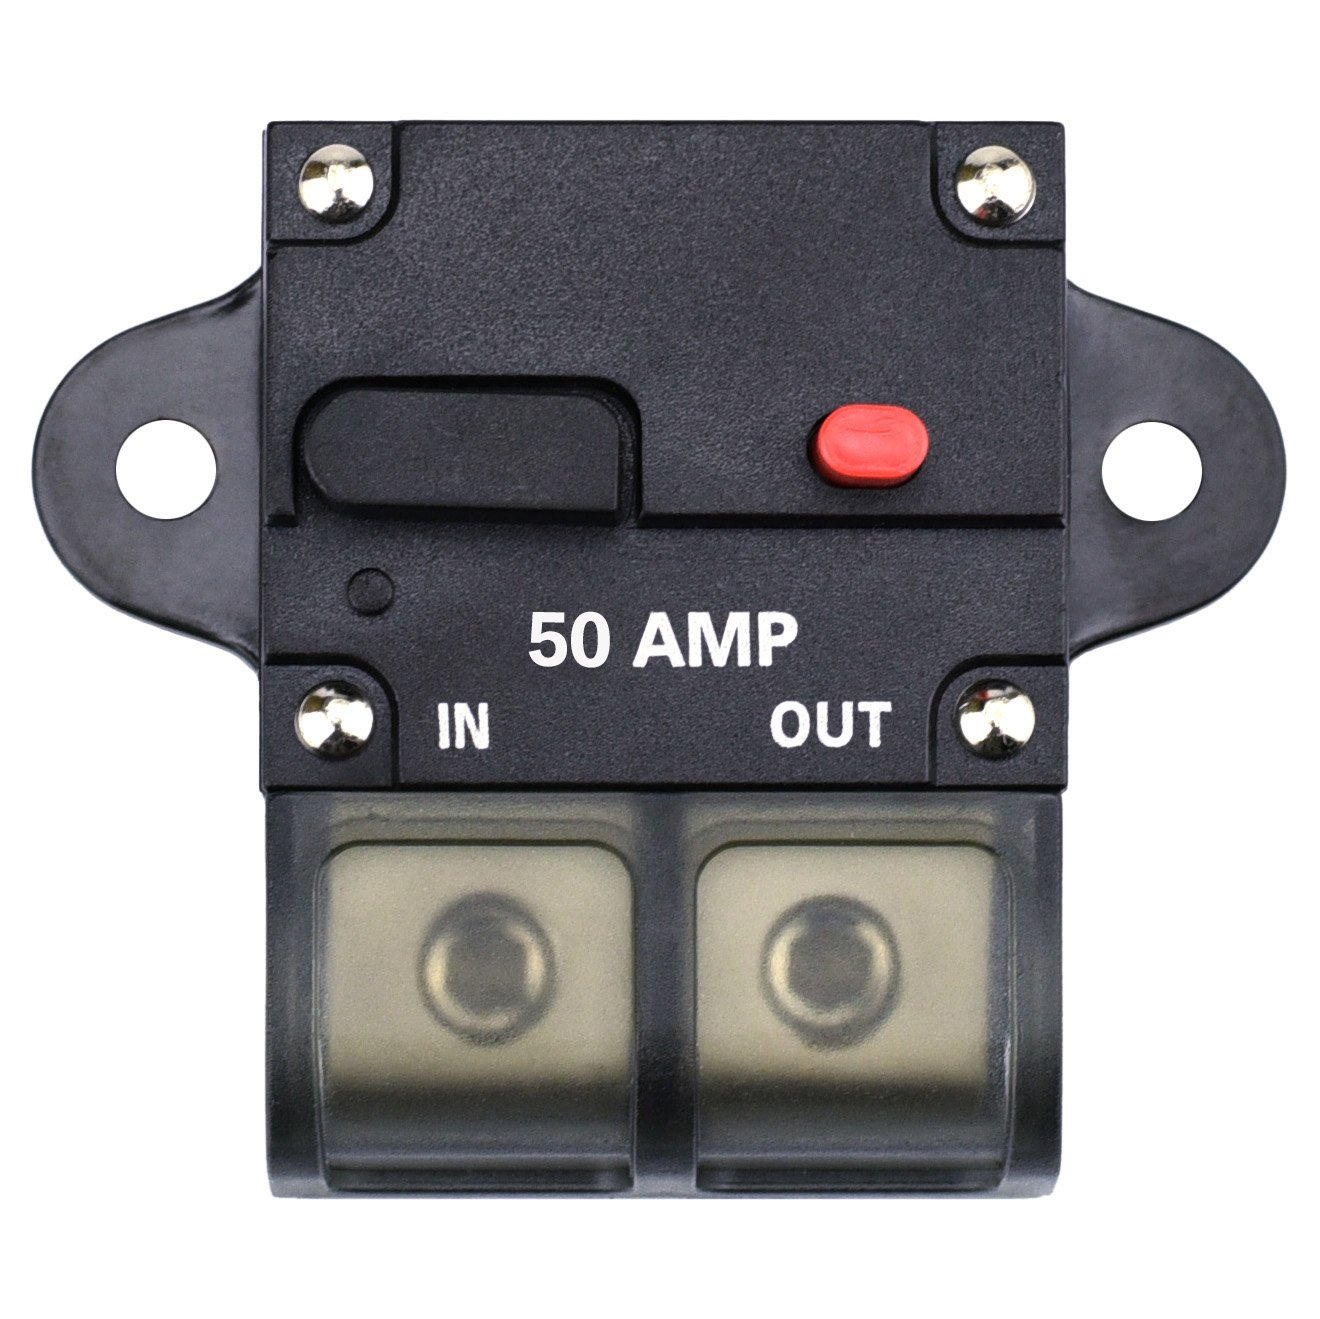 0-8 Gauge Wire Inline Fuse Block 12V 42V DC for Car Rv Marine Automotive Stereo Audio Electronic System Cllena 50 Amp Circuit Breaker with Manual Reset